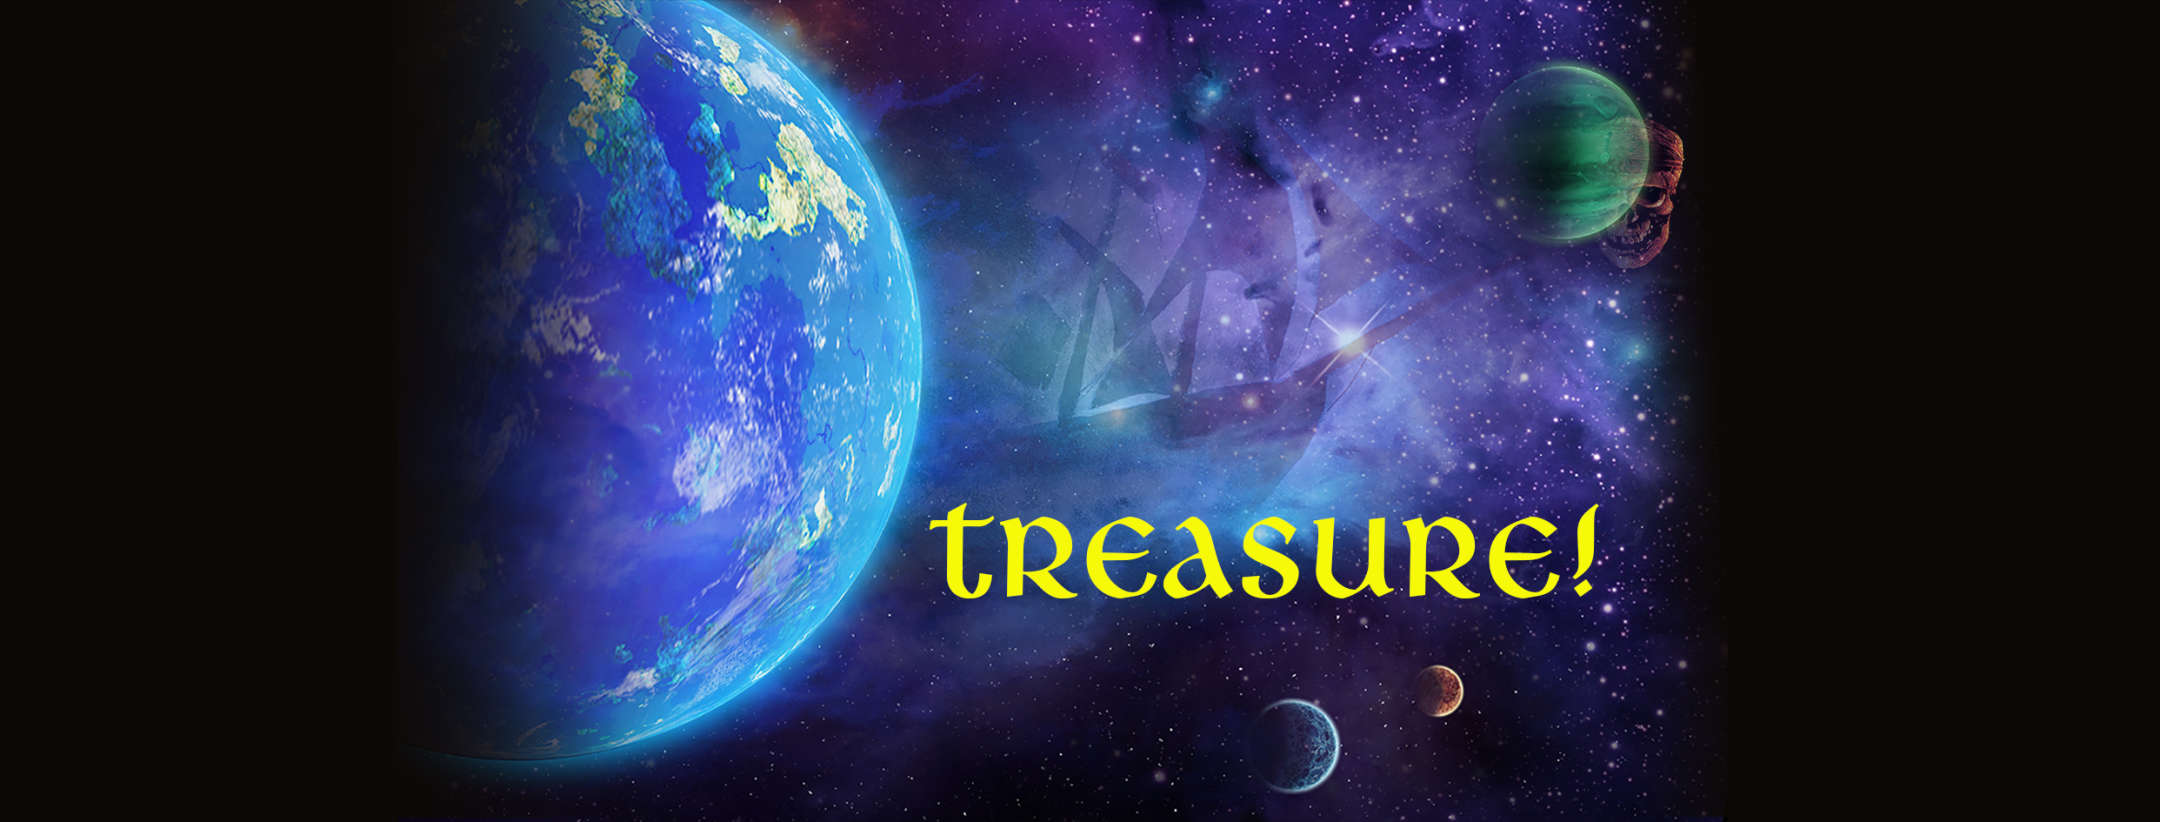 The Treasure Set Cover Image